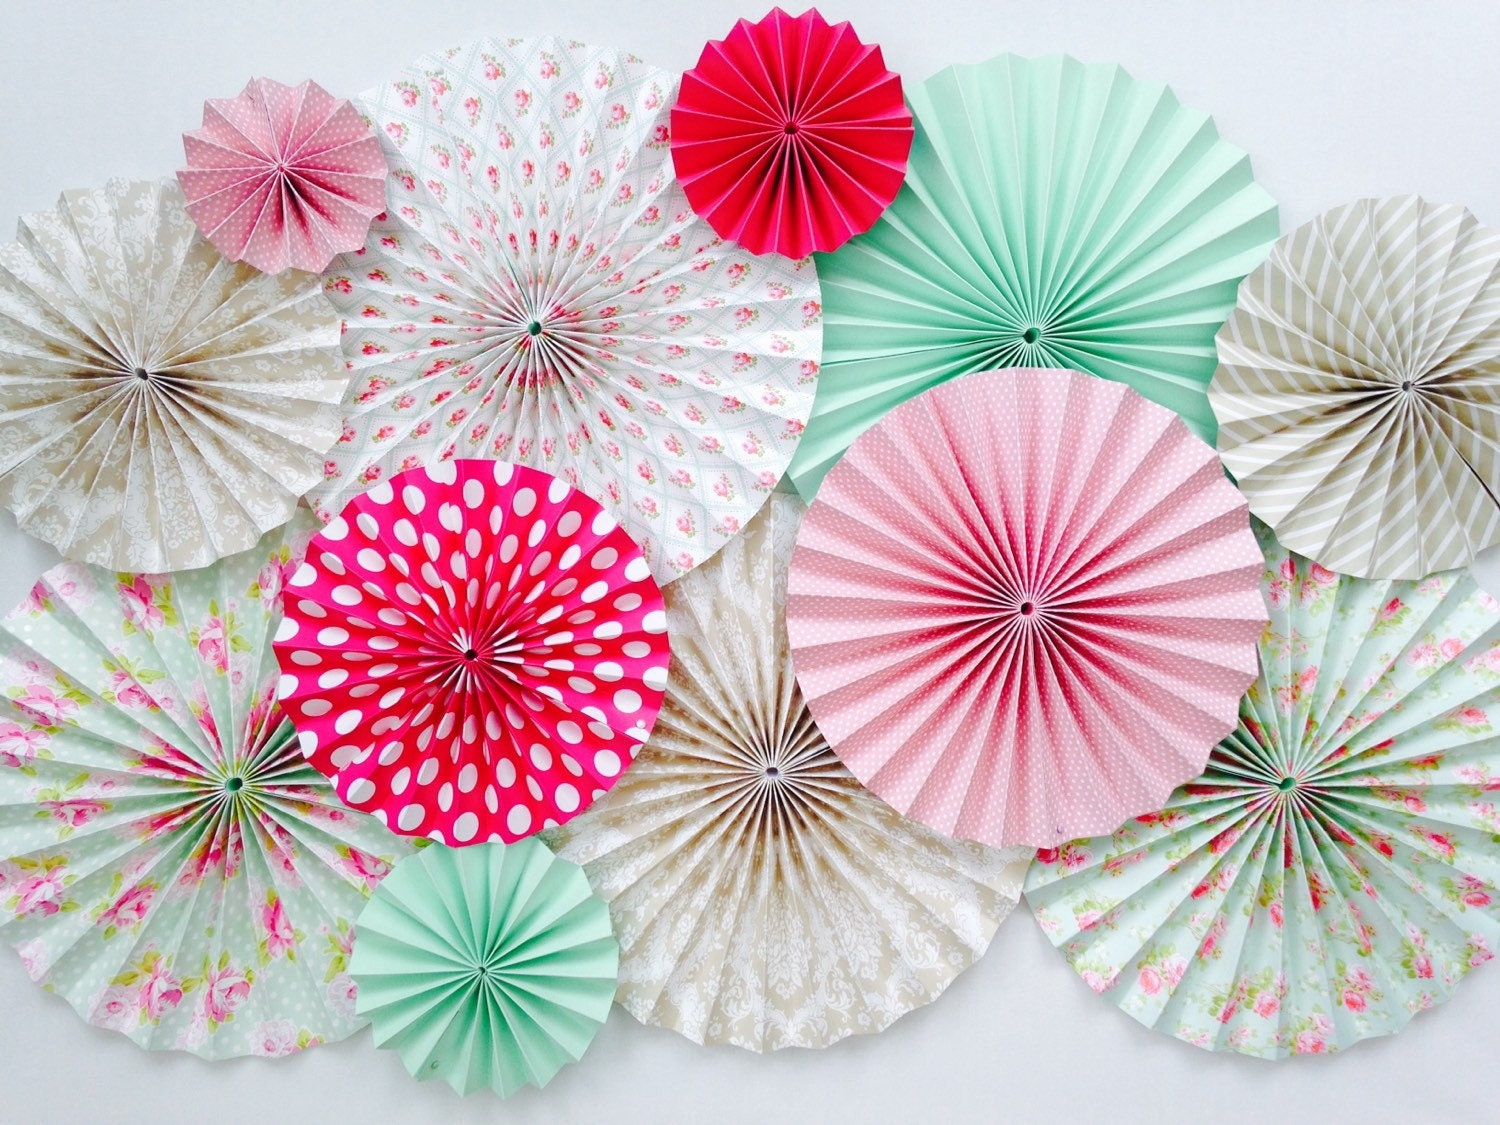 how to make wind fan with paper